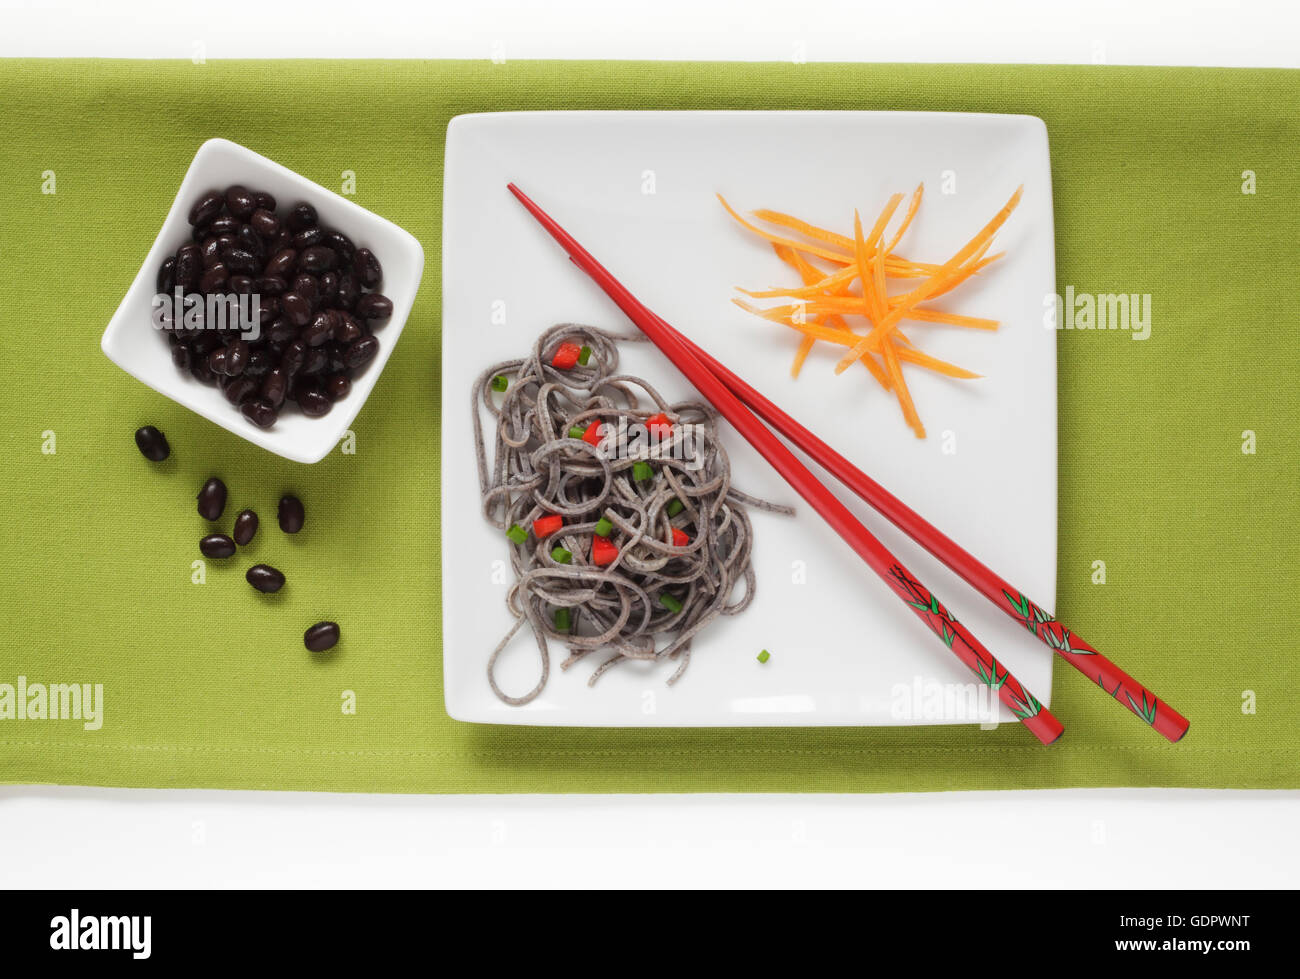 Black Bean and Black Bean Spaghetti garnished with Carrots - Stock Image